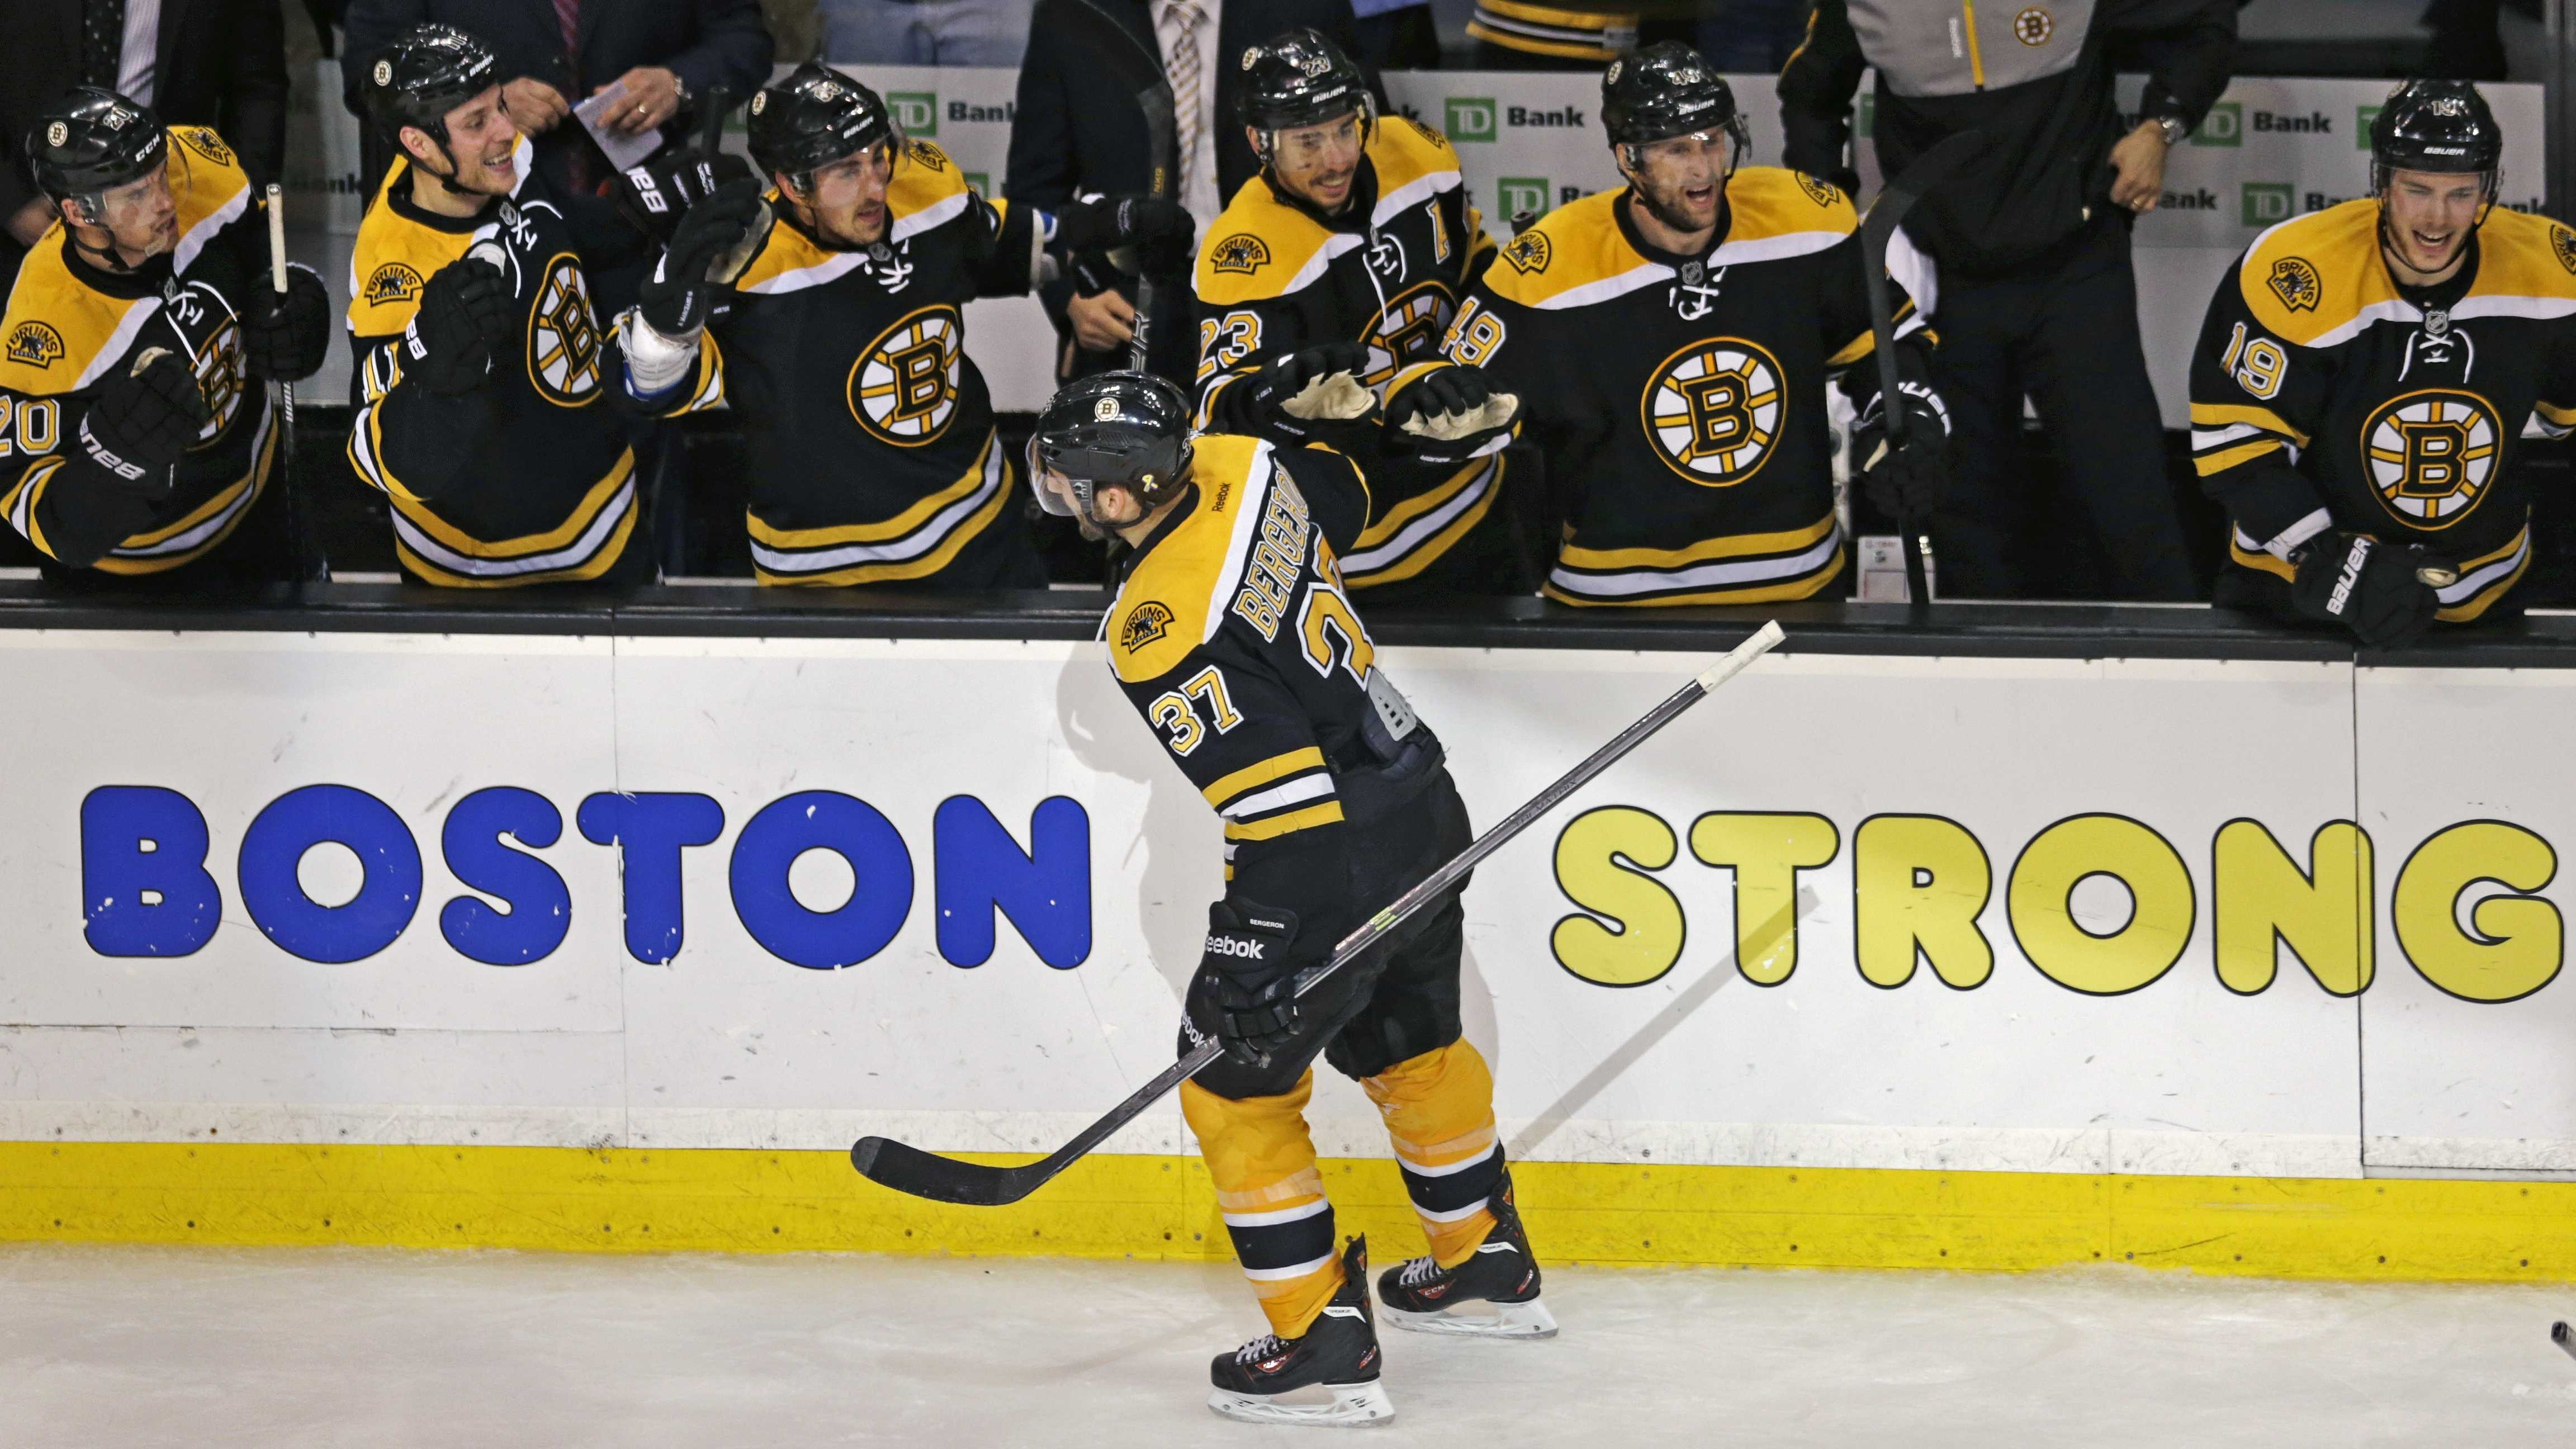 Bruins Boston Strong 051313 AP